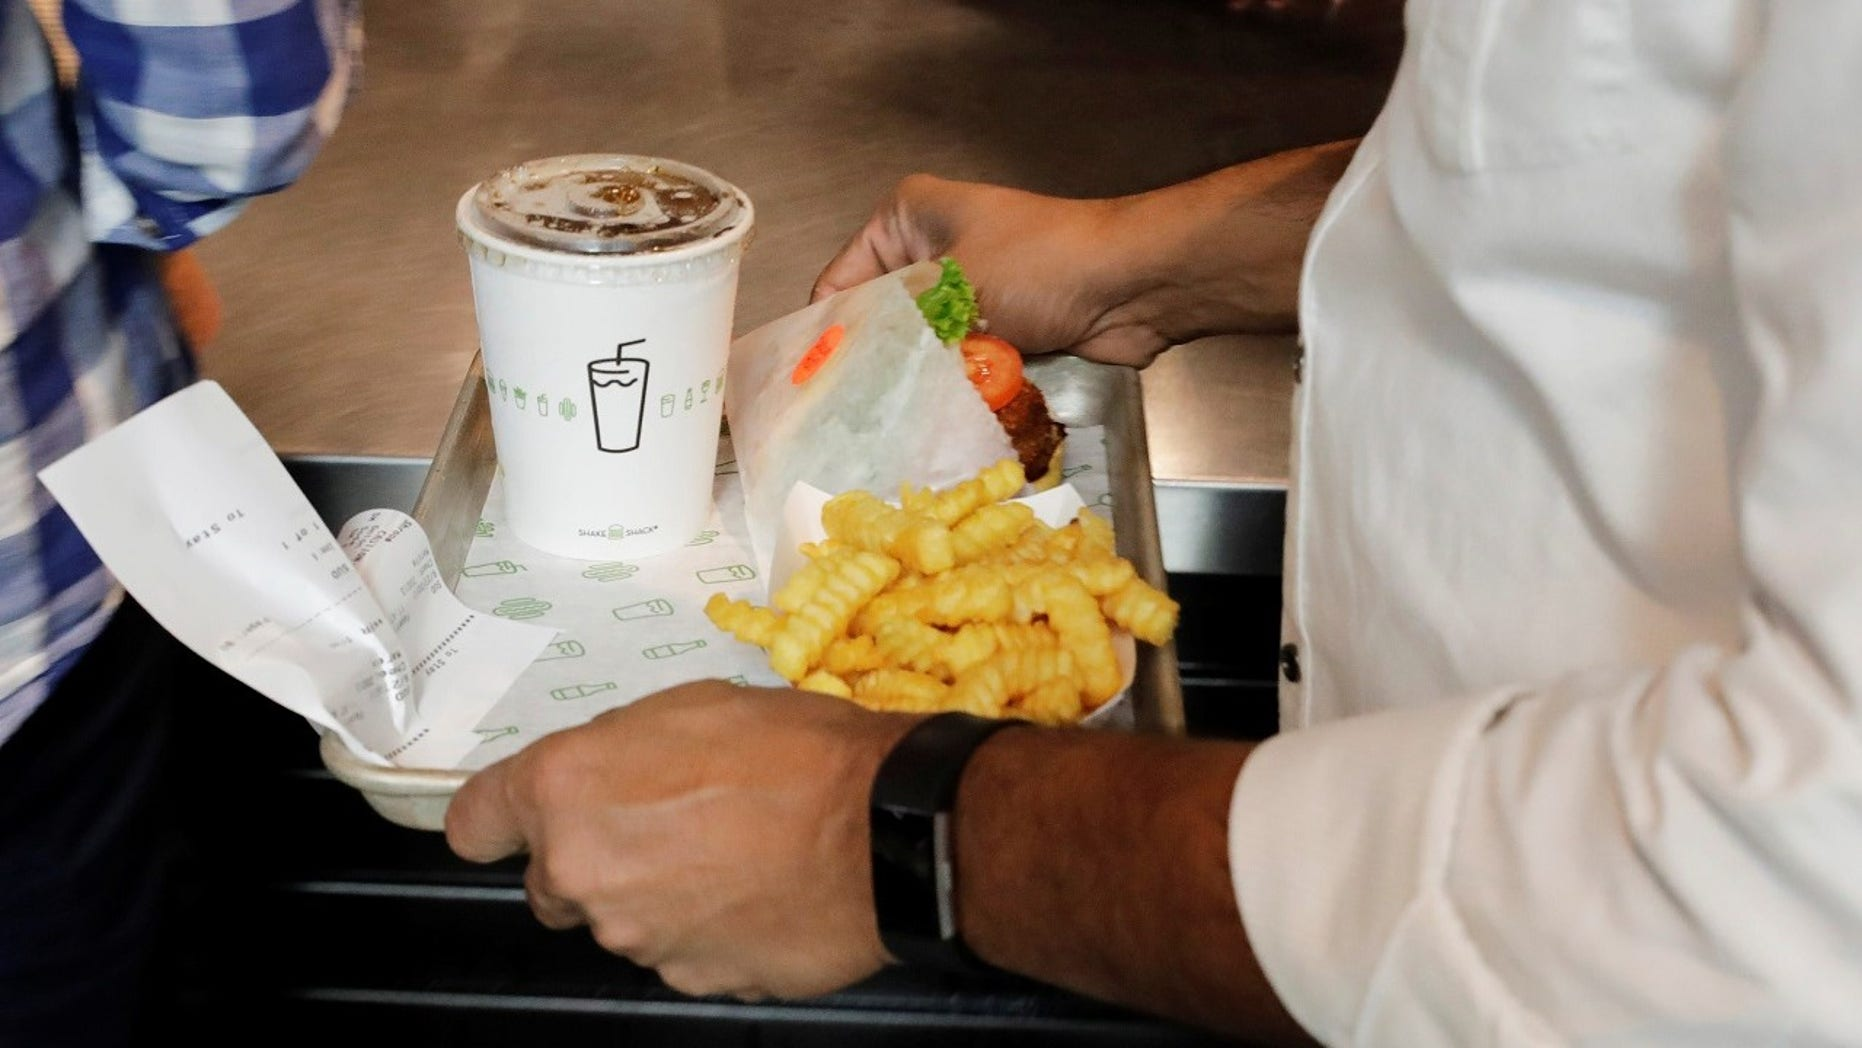 A new Shake Shack in NYC will feature kiosks that only accept credit cards.